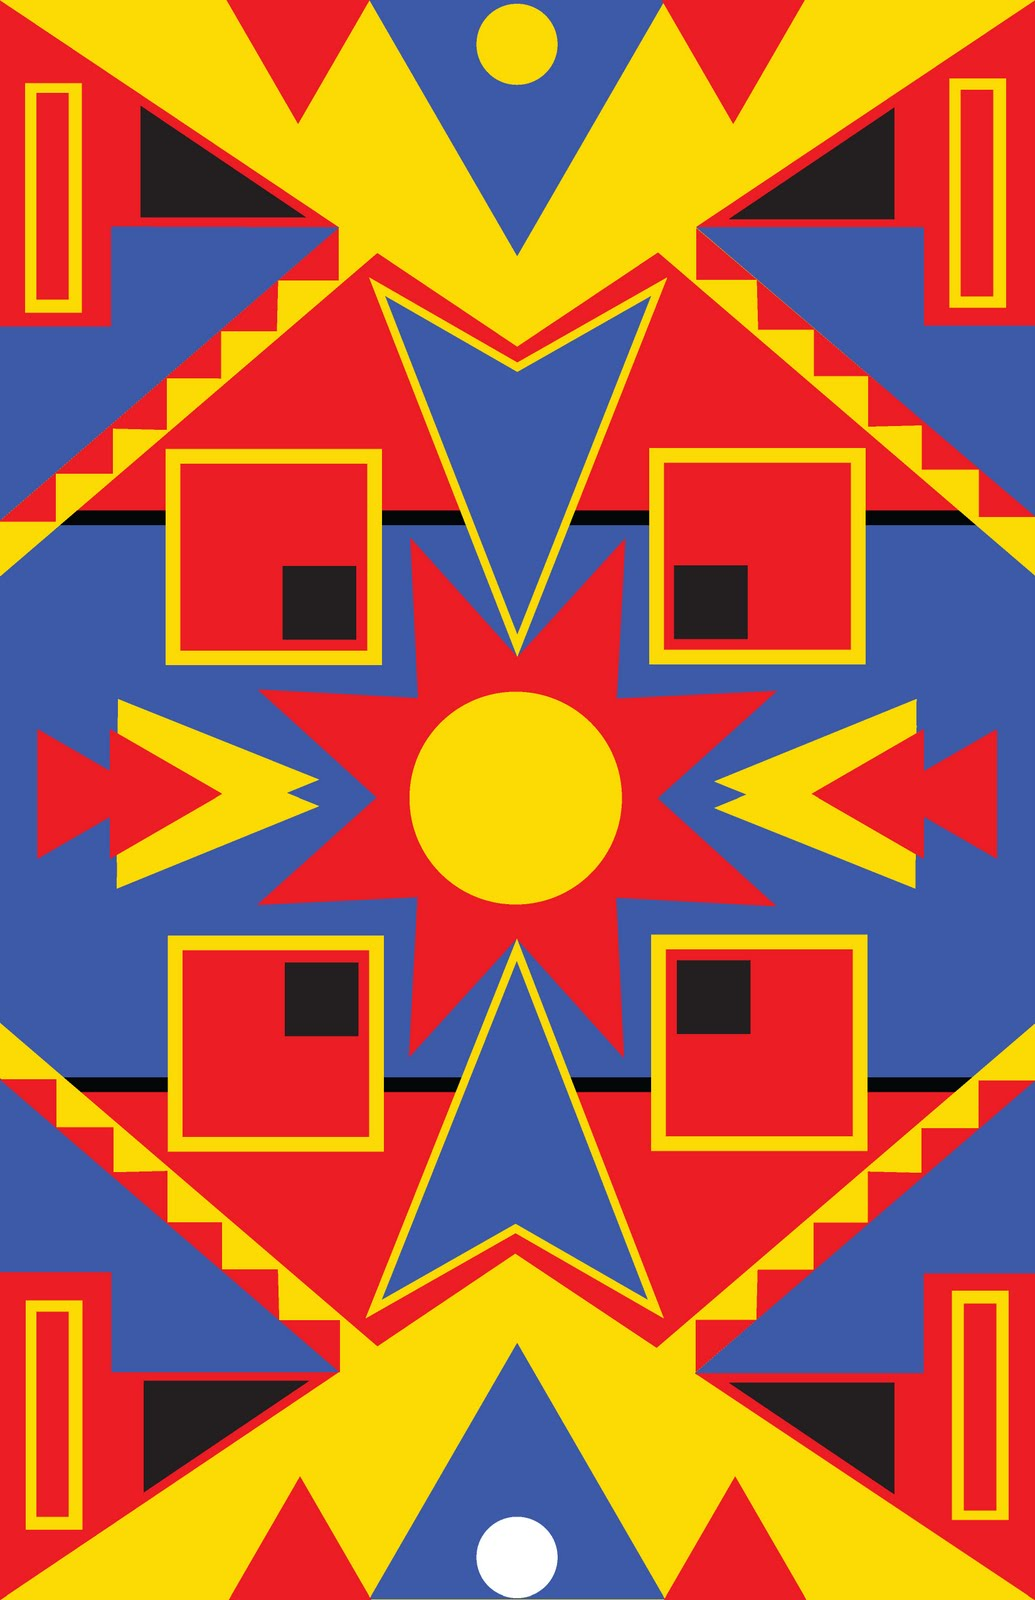 Provoke thinking graphics native american design poster for Native design